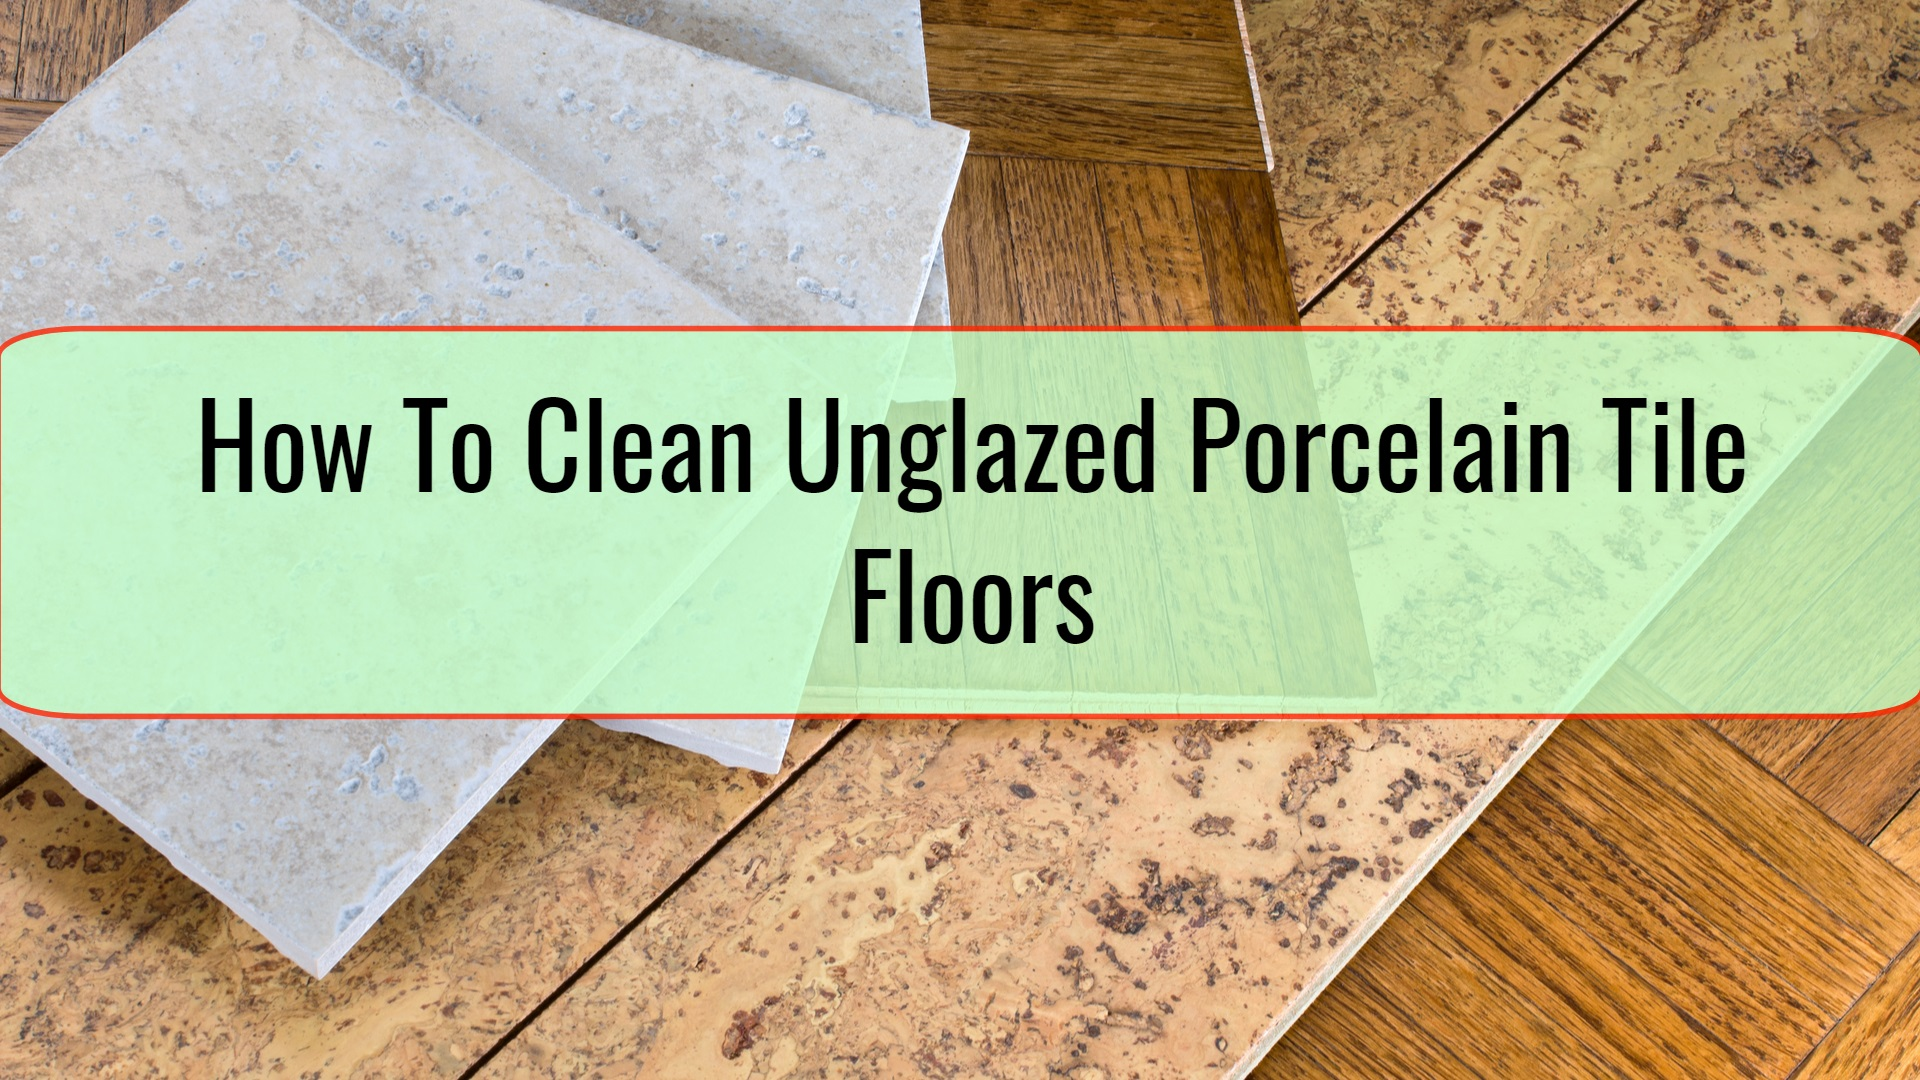 How To Clean Unglazed Porcelain Tile Floors • Home Tips